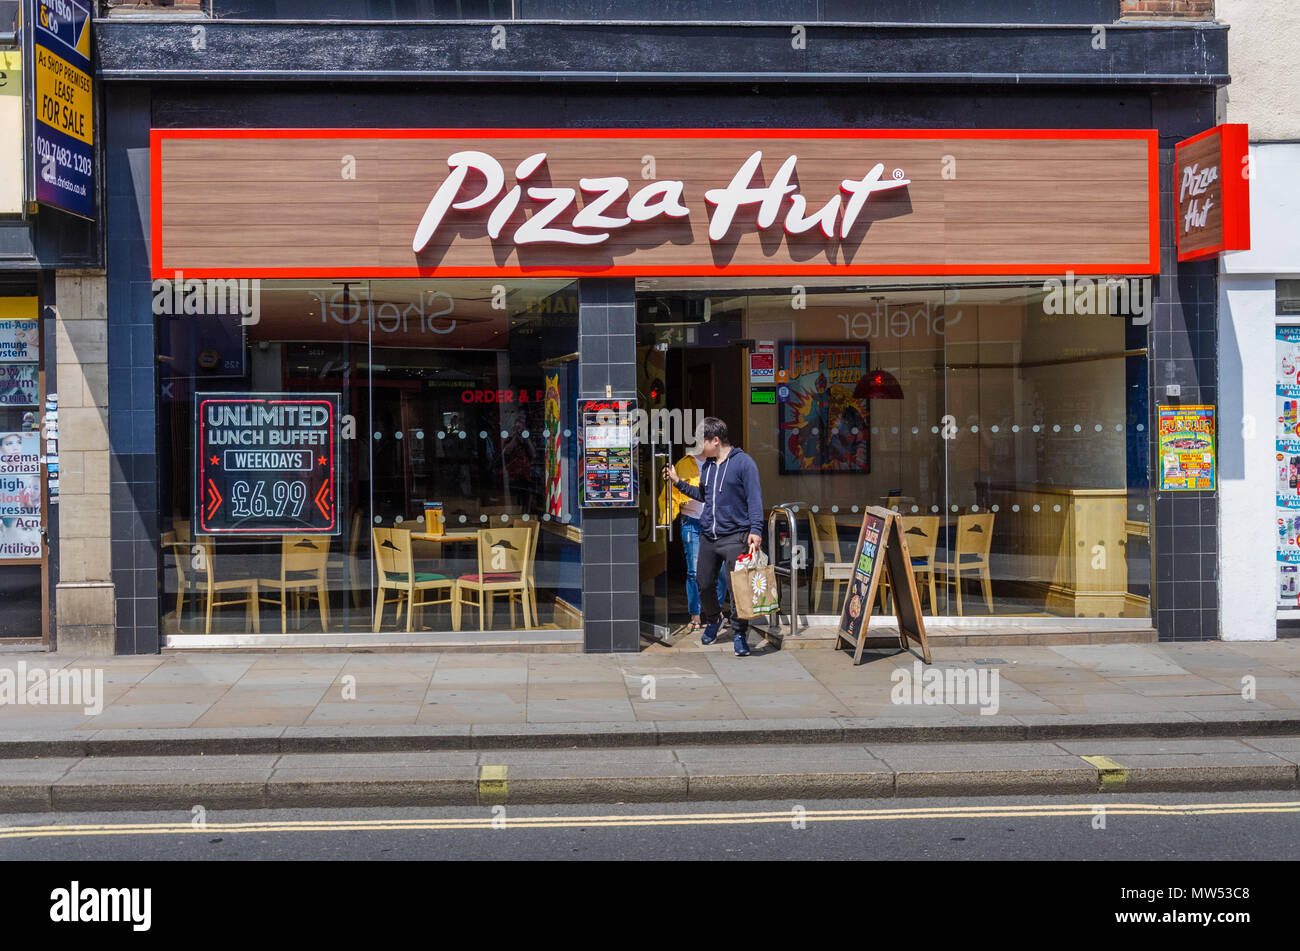 Pizza Hut Restaurant Uk Stock Photos Pizza Hut Restaurant